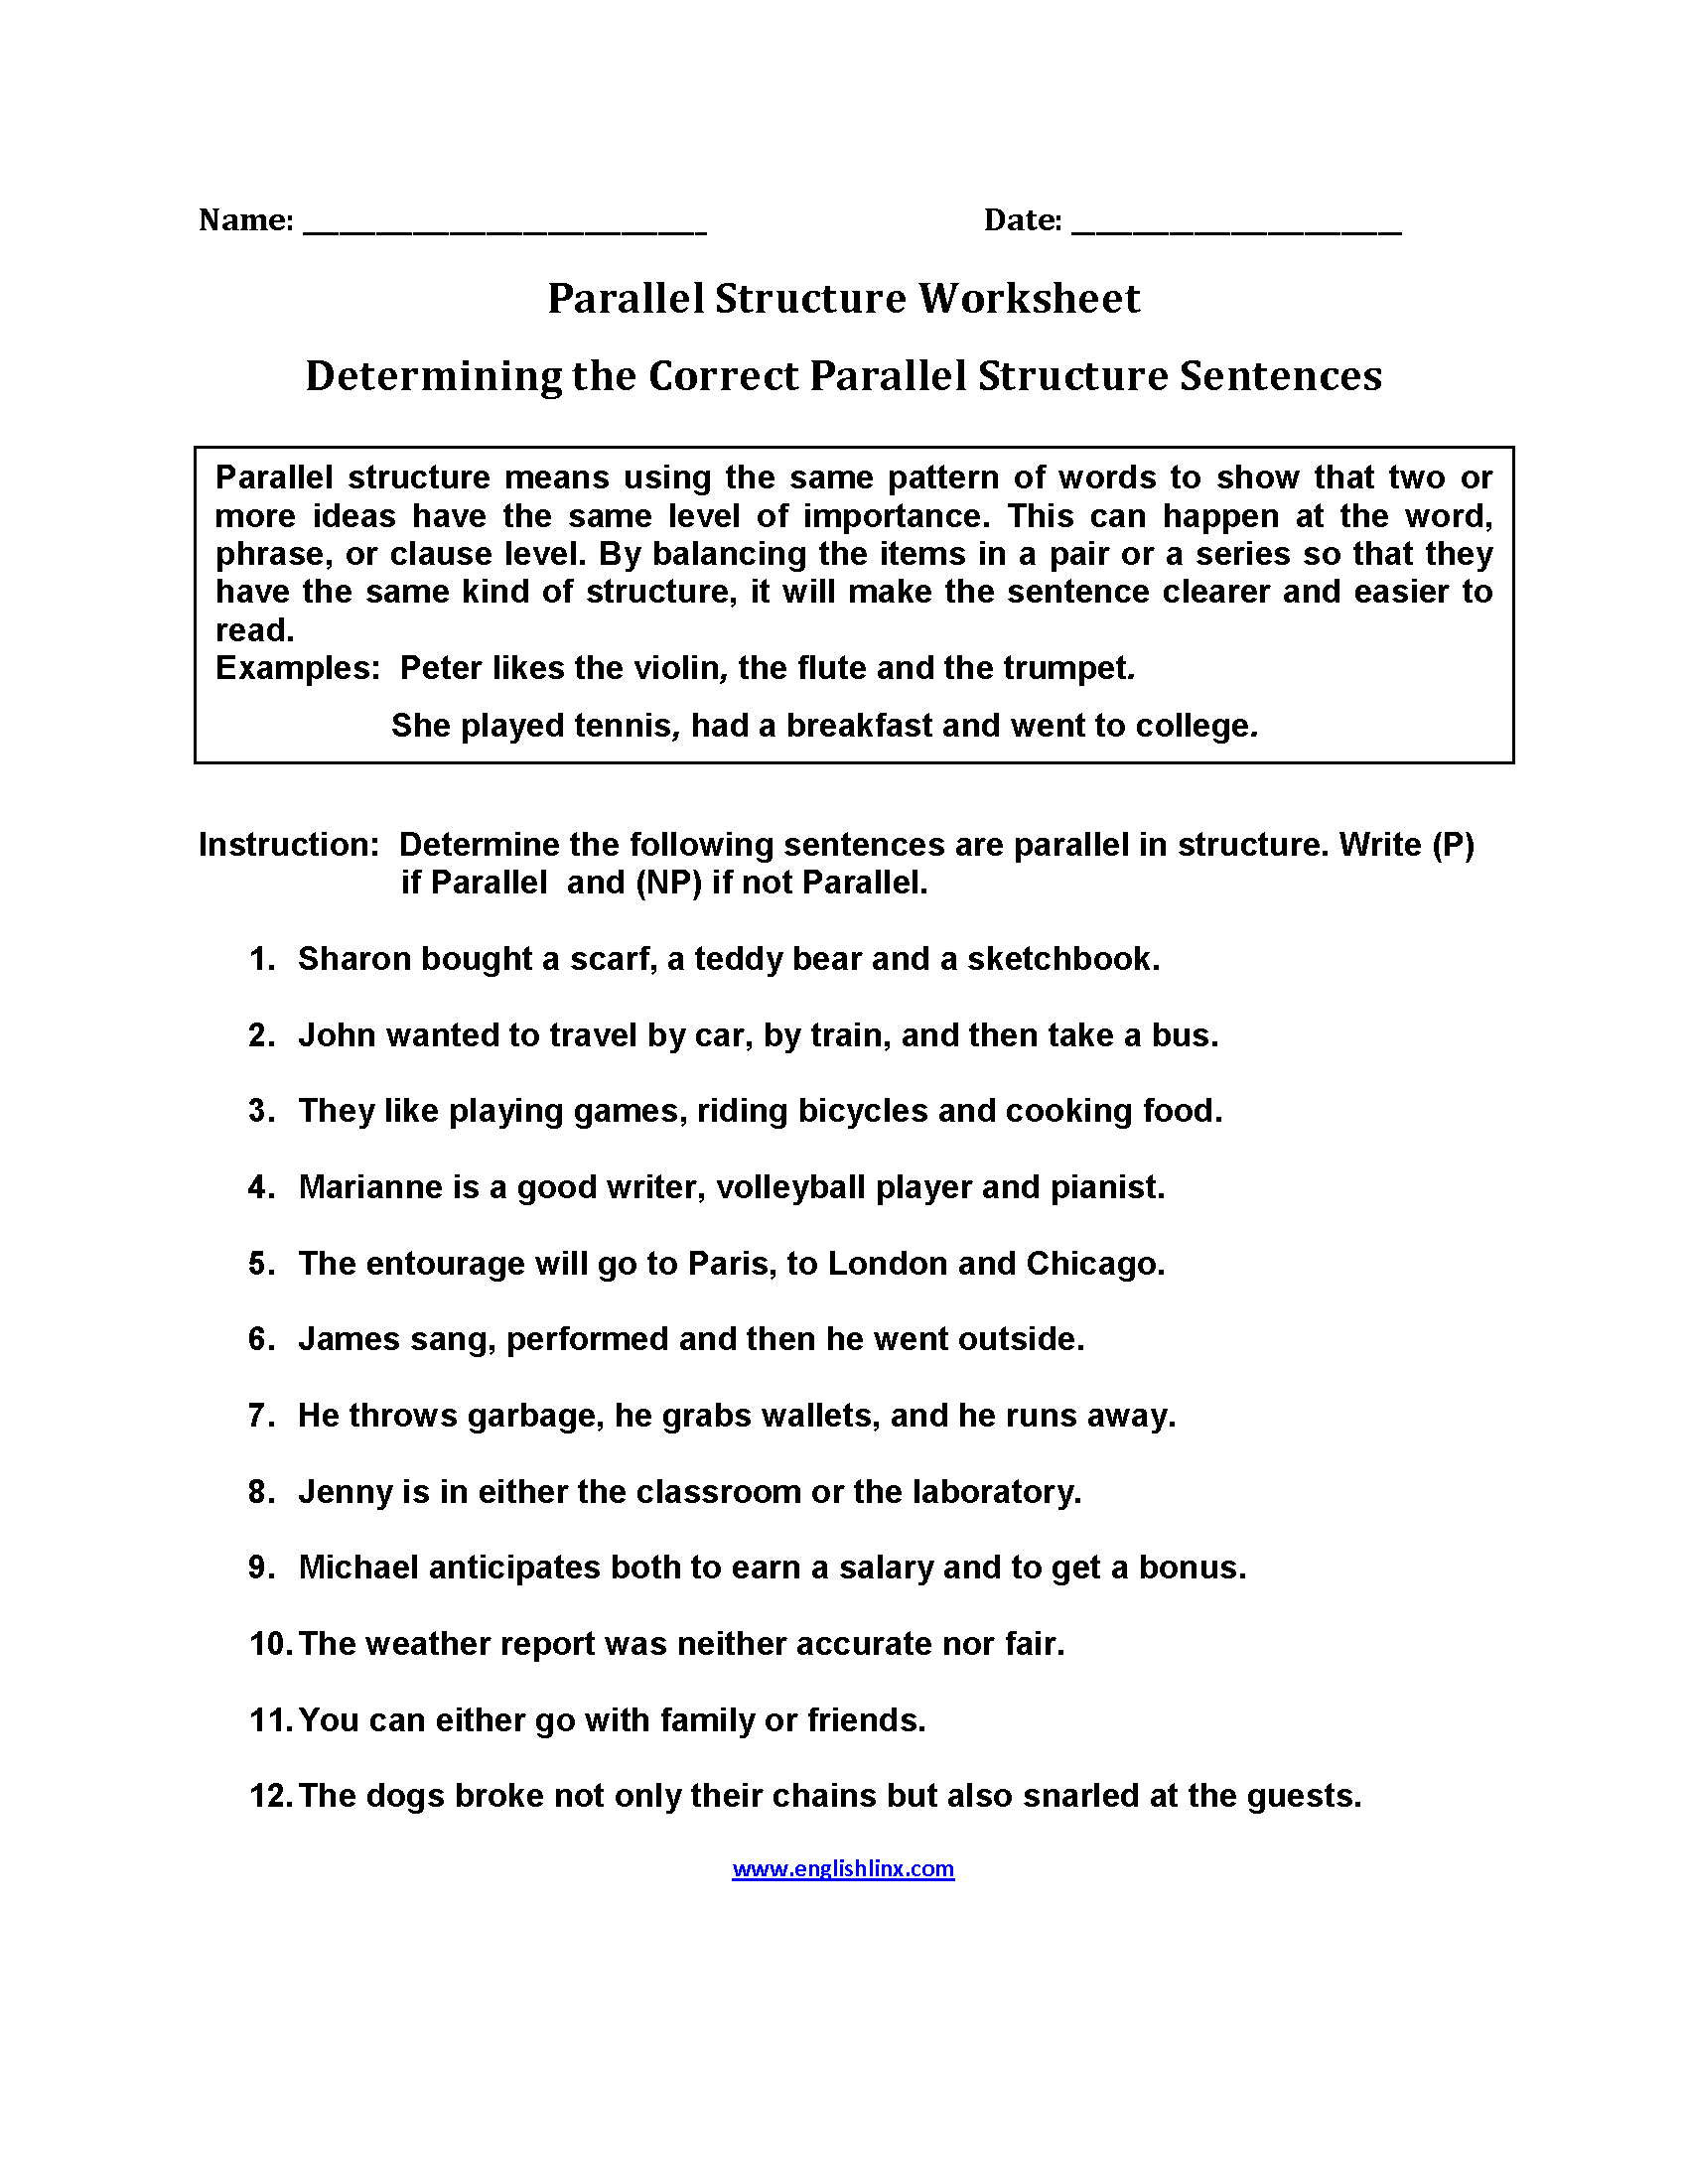 Worksheet Parallel Structure Worksheet parallel structure worksheets determining correct worksheets